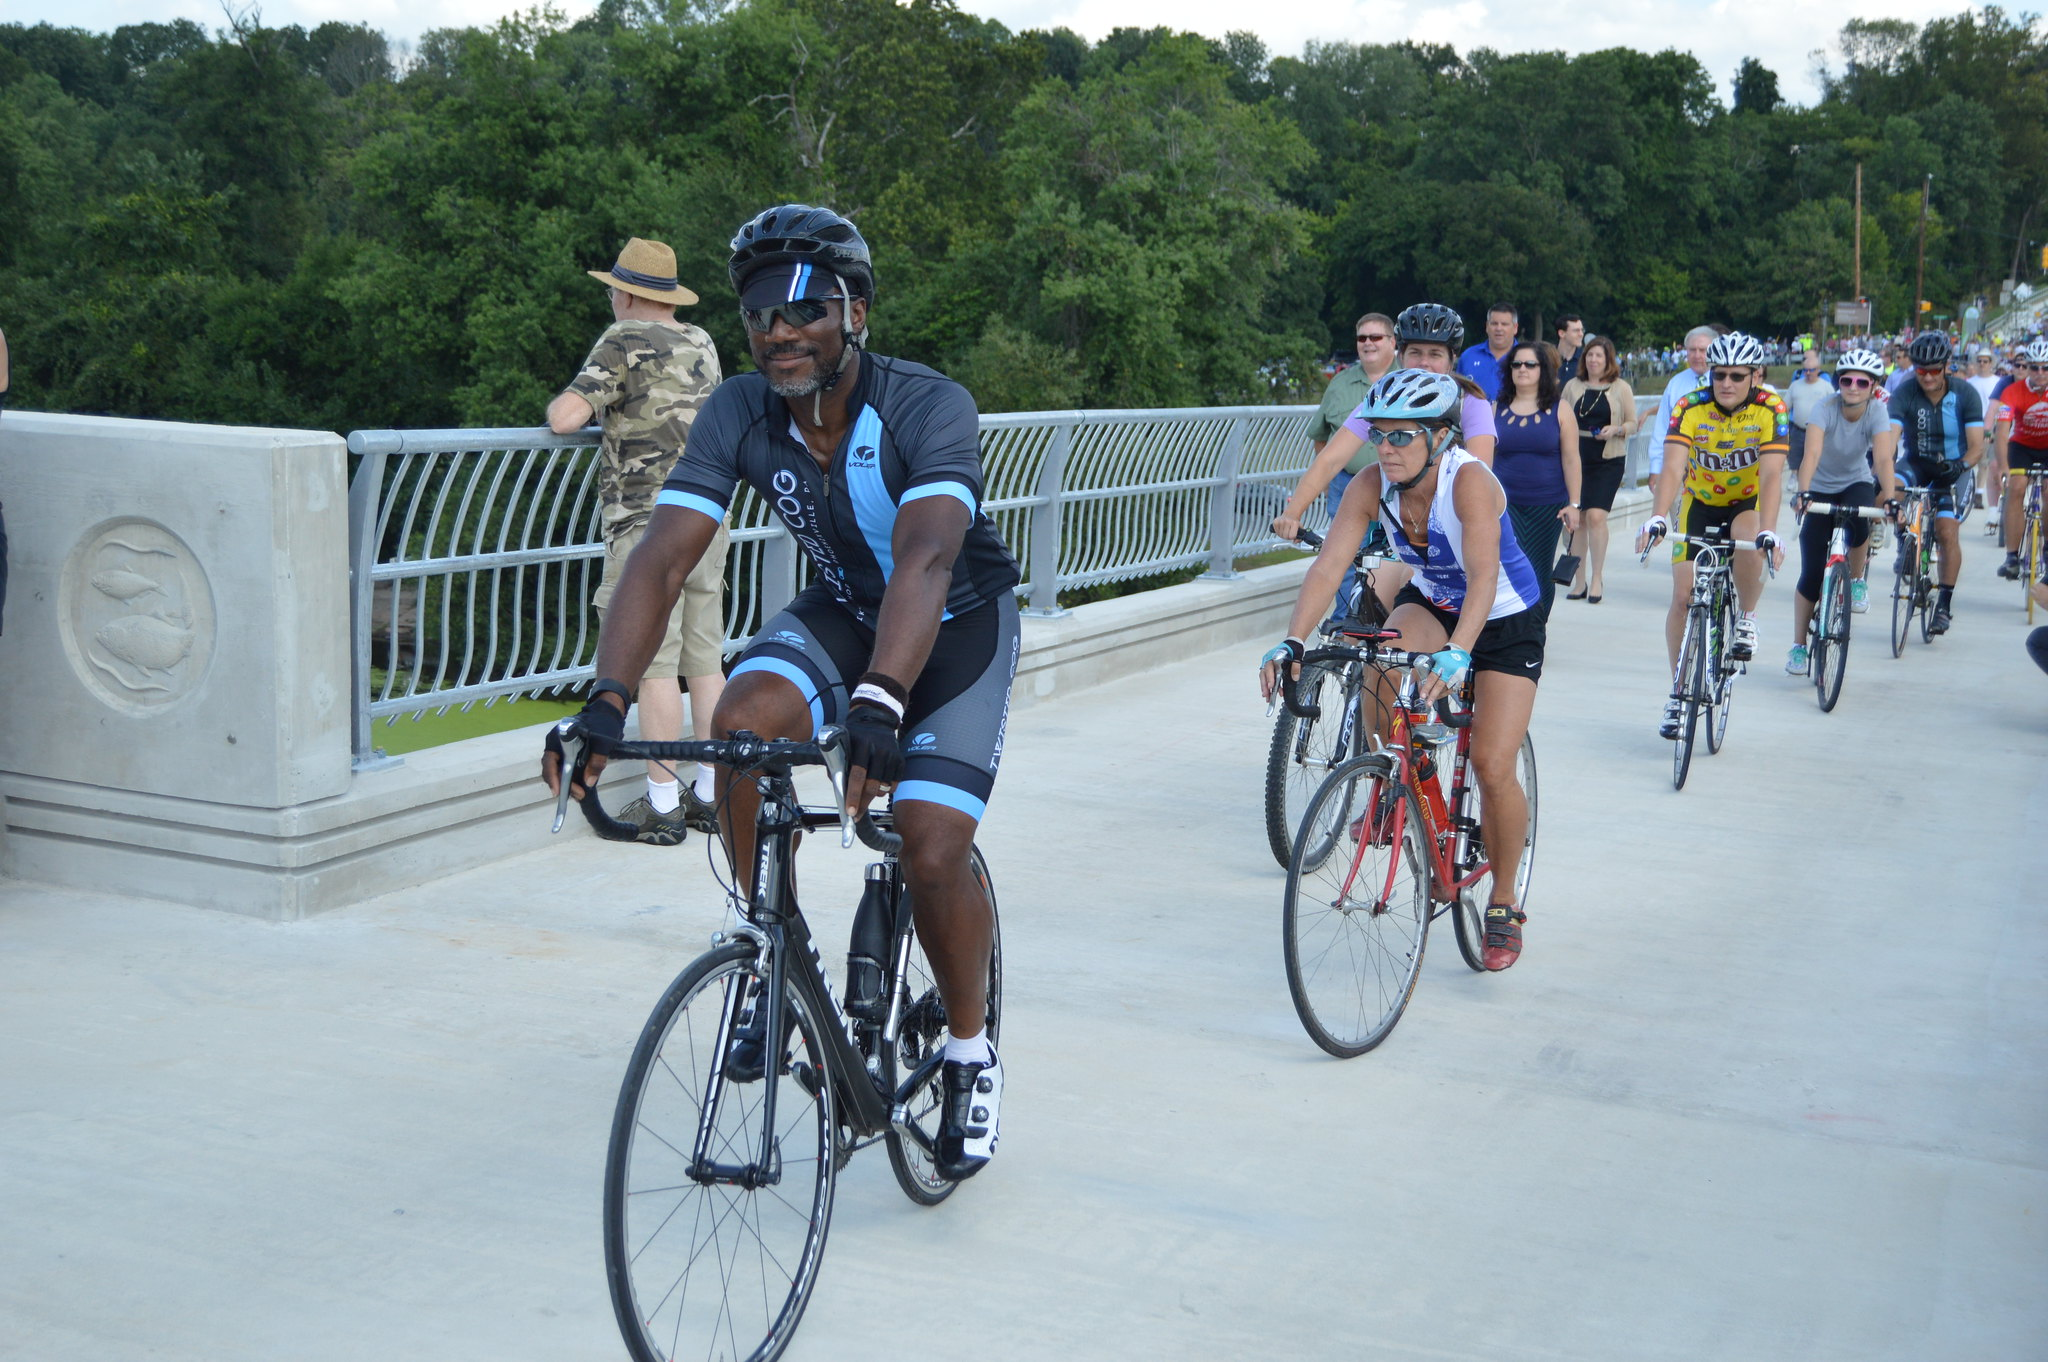 Cyclists crossing Sullivan's Bridge in Valley Forge